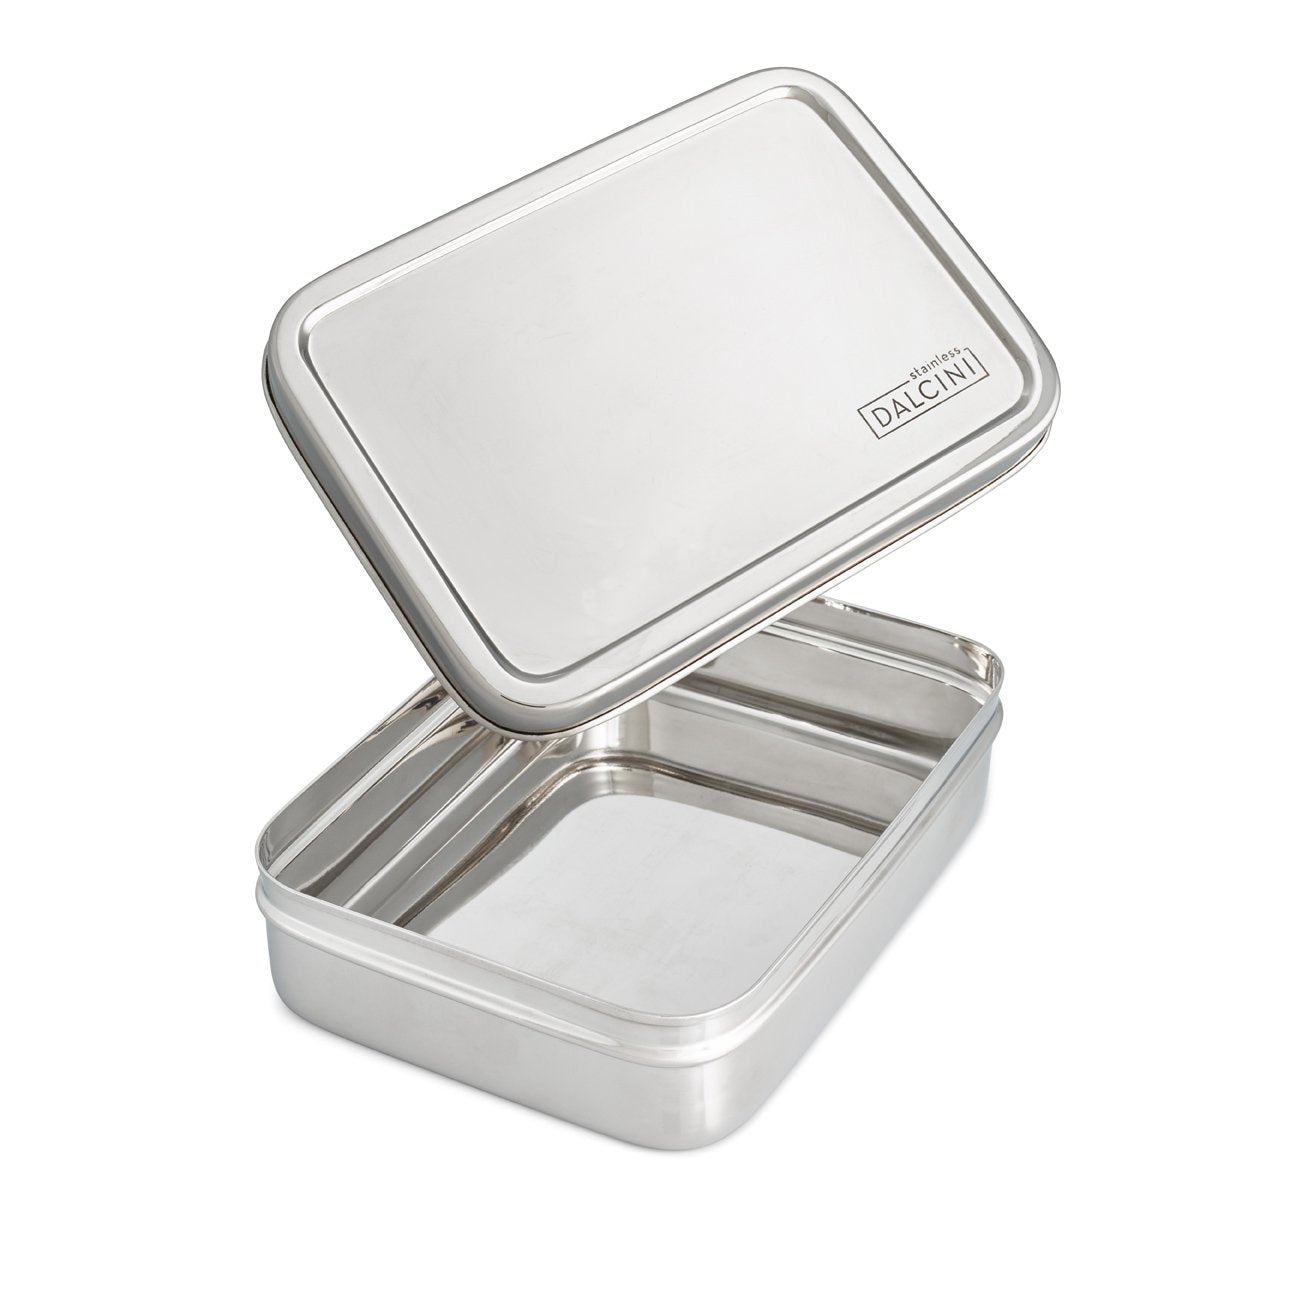 2-piece Lunch Set - dalcinistainless